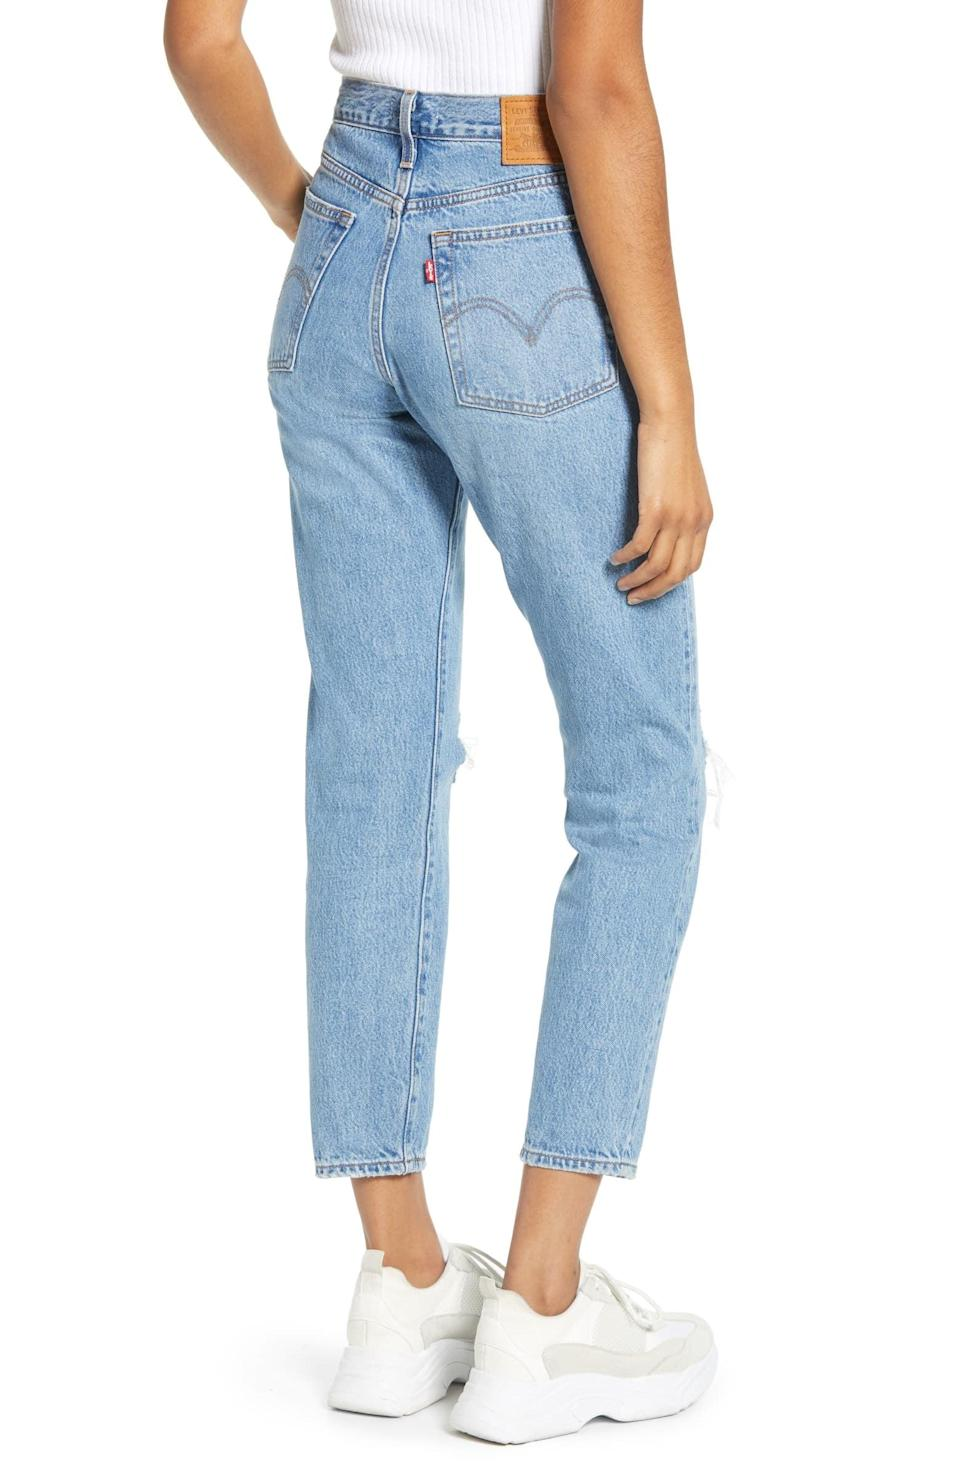 "<p>You can't go wrong owning the <a href=""https://www.popsugar.com/buy/Levi-Wedgie-Icon-Fit-Ripped-Straight-Leg-Jeans-585712?p_name=Levi%27s%20Wedgie%20Icon%20Fit%20Ripped%20Straight%20Leg%20Jeans&retailer=shop.nordstrom.com&pid=585712&price=98&evar1=fab%3Aus&evar9=45615413&evar98=https%3A%2F%2Fwww.popsugar.com%2Ffashion%2Fphoto-gallery%2F45615413%2Fimage%2F47583295%2FLevi-Wedgie-Icon-Fit-Ripped-Straight-Leg-Jeans&list1=shopping%2Cdenim%2Cwinter%2Cwinter%20fashion&prop13=mobile&pdata=1"" class=""link rapid-noclick-resp"" rel=""nofollow noopener"" target=""_blank"" data-ylk=""slk:Levi's Wedgie Icon Fit Ripped Straight Leg Jeans"">Levi's Wedgie Icon Fit Ripped Straight Leg Jeans</a> ($98).</p>"